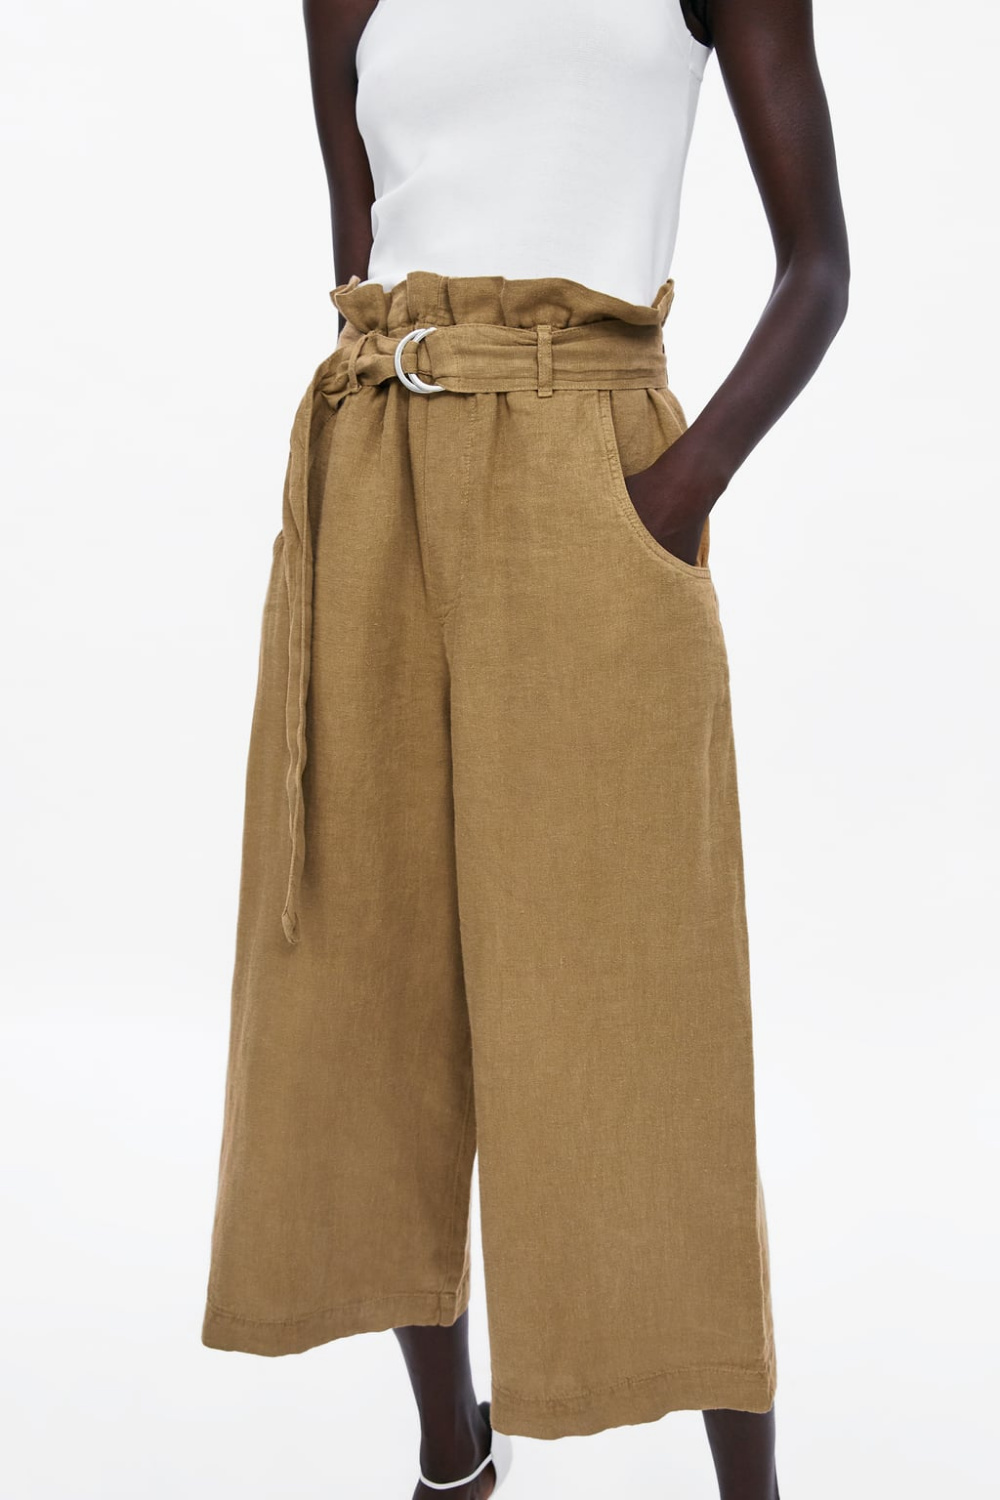 pantalones de pata ancha Zara | Craving for Barneys